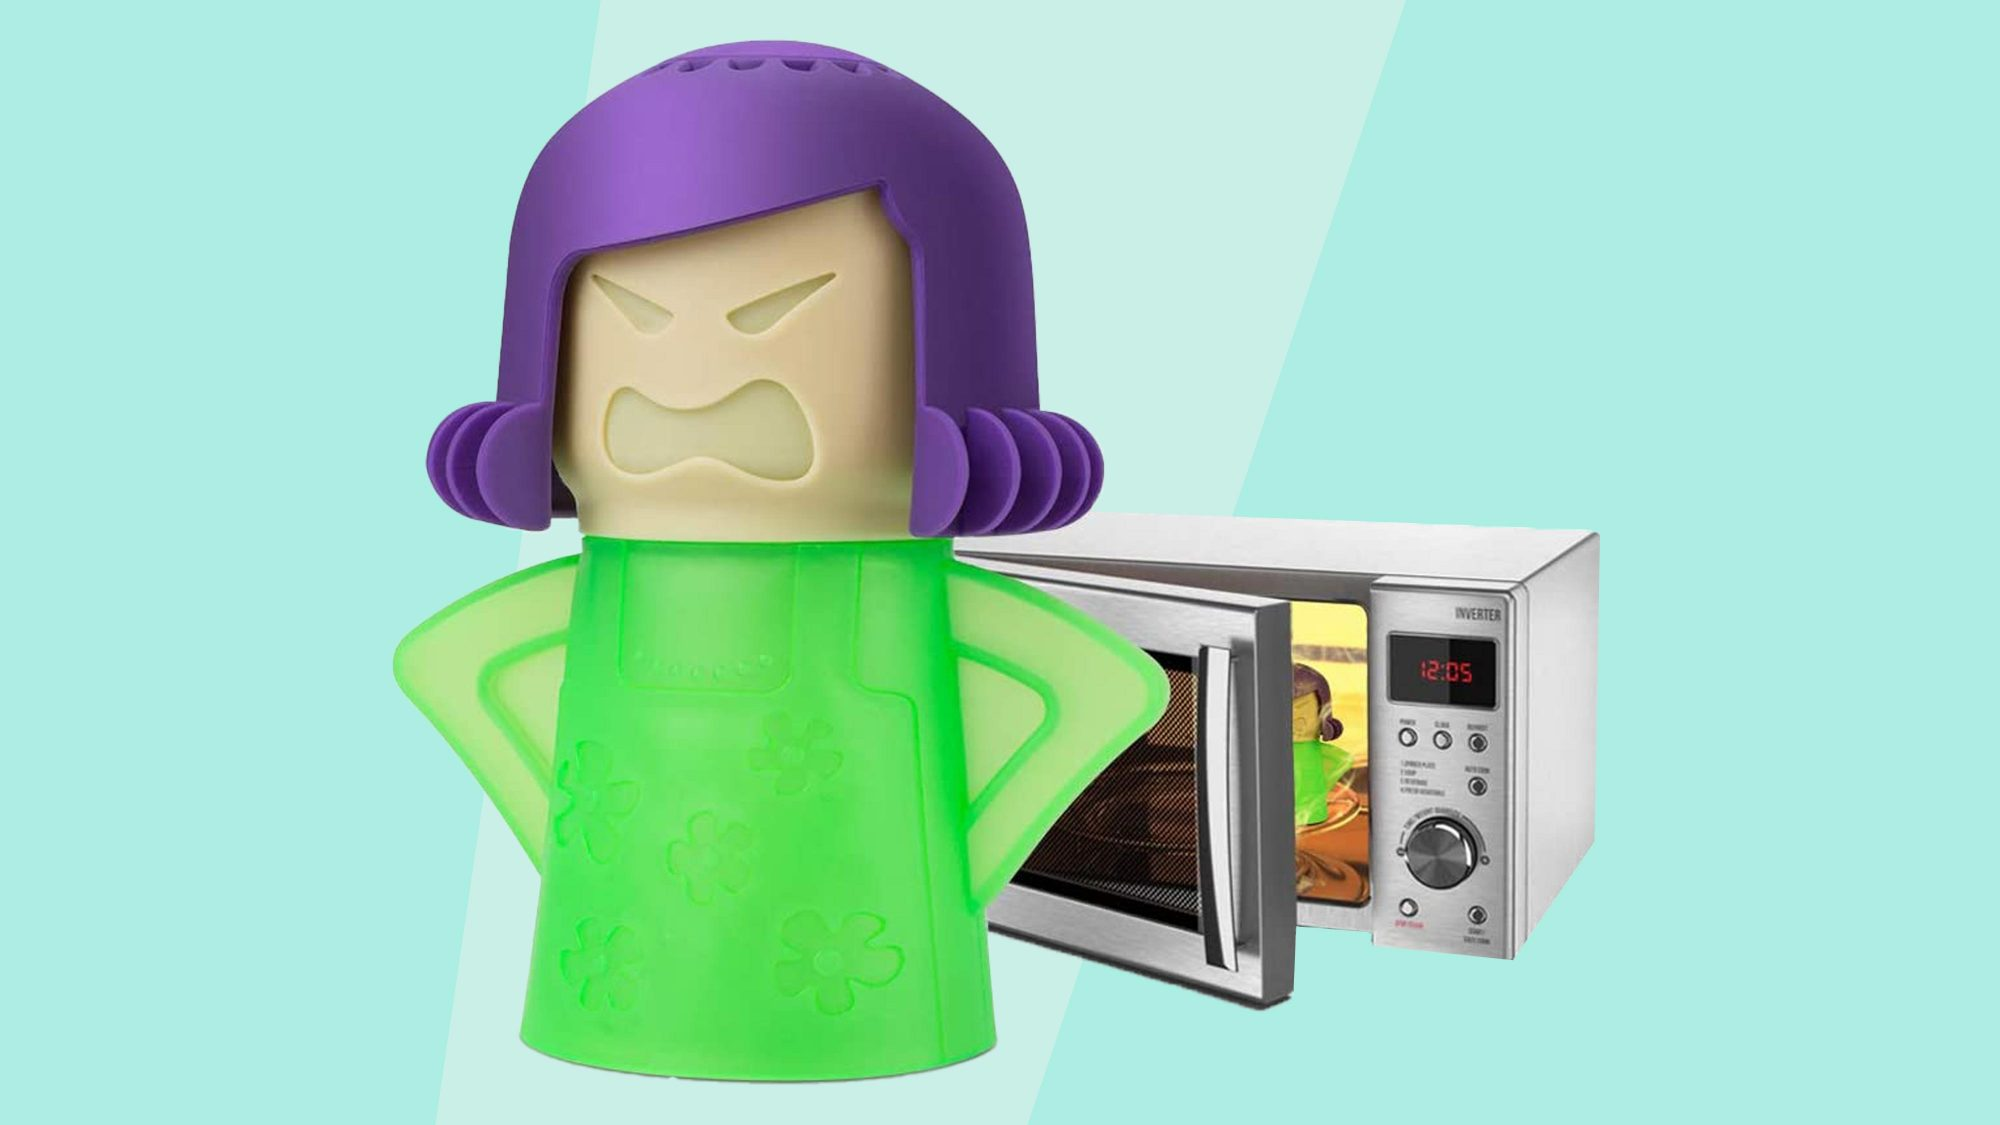 TOPIST Angry Mama Microwave Cleaner Angry Mom Microwave Oven Steam Cleaner